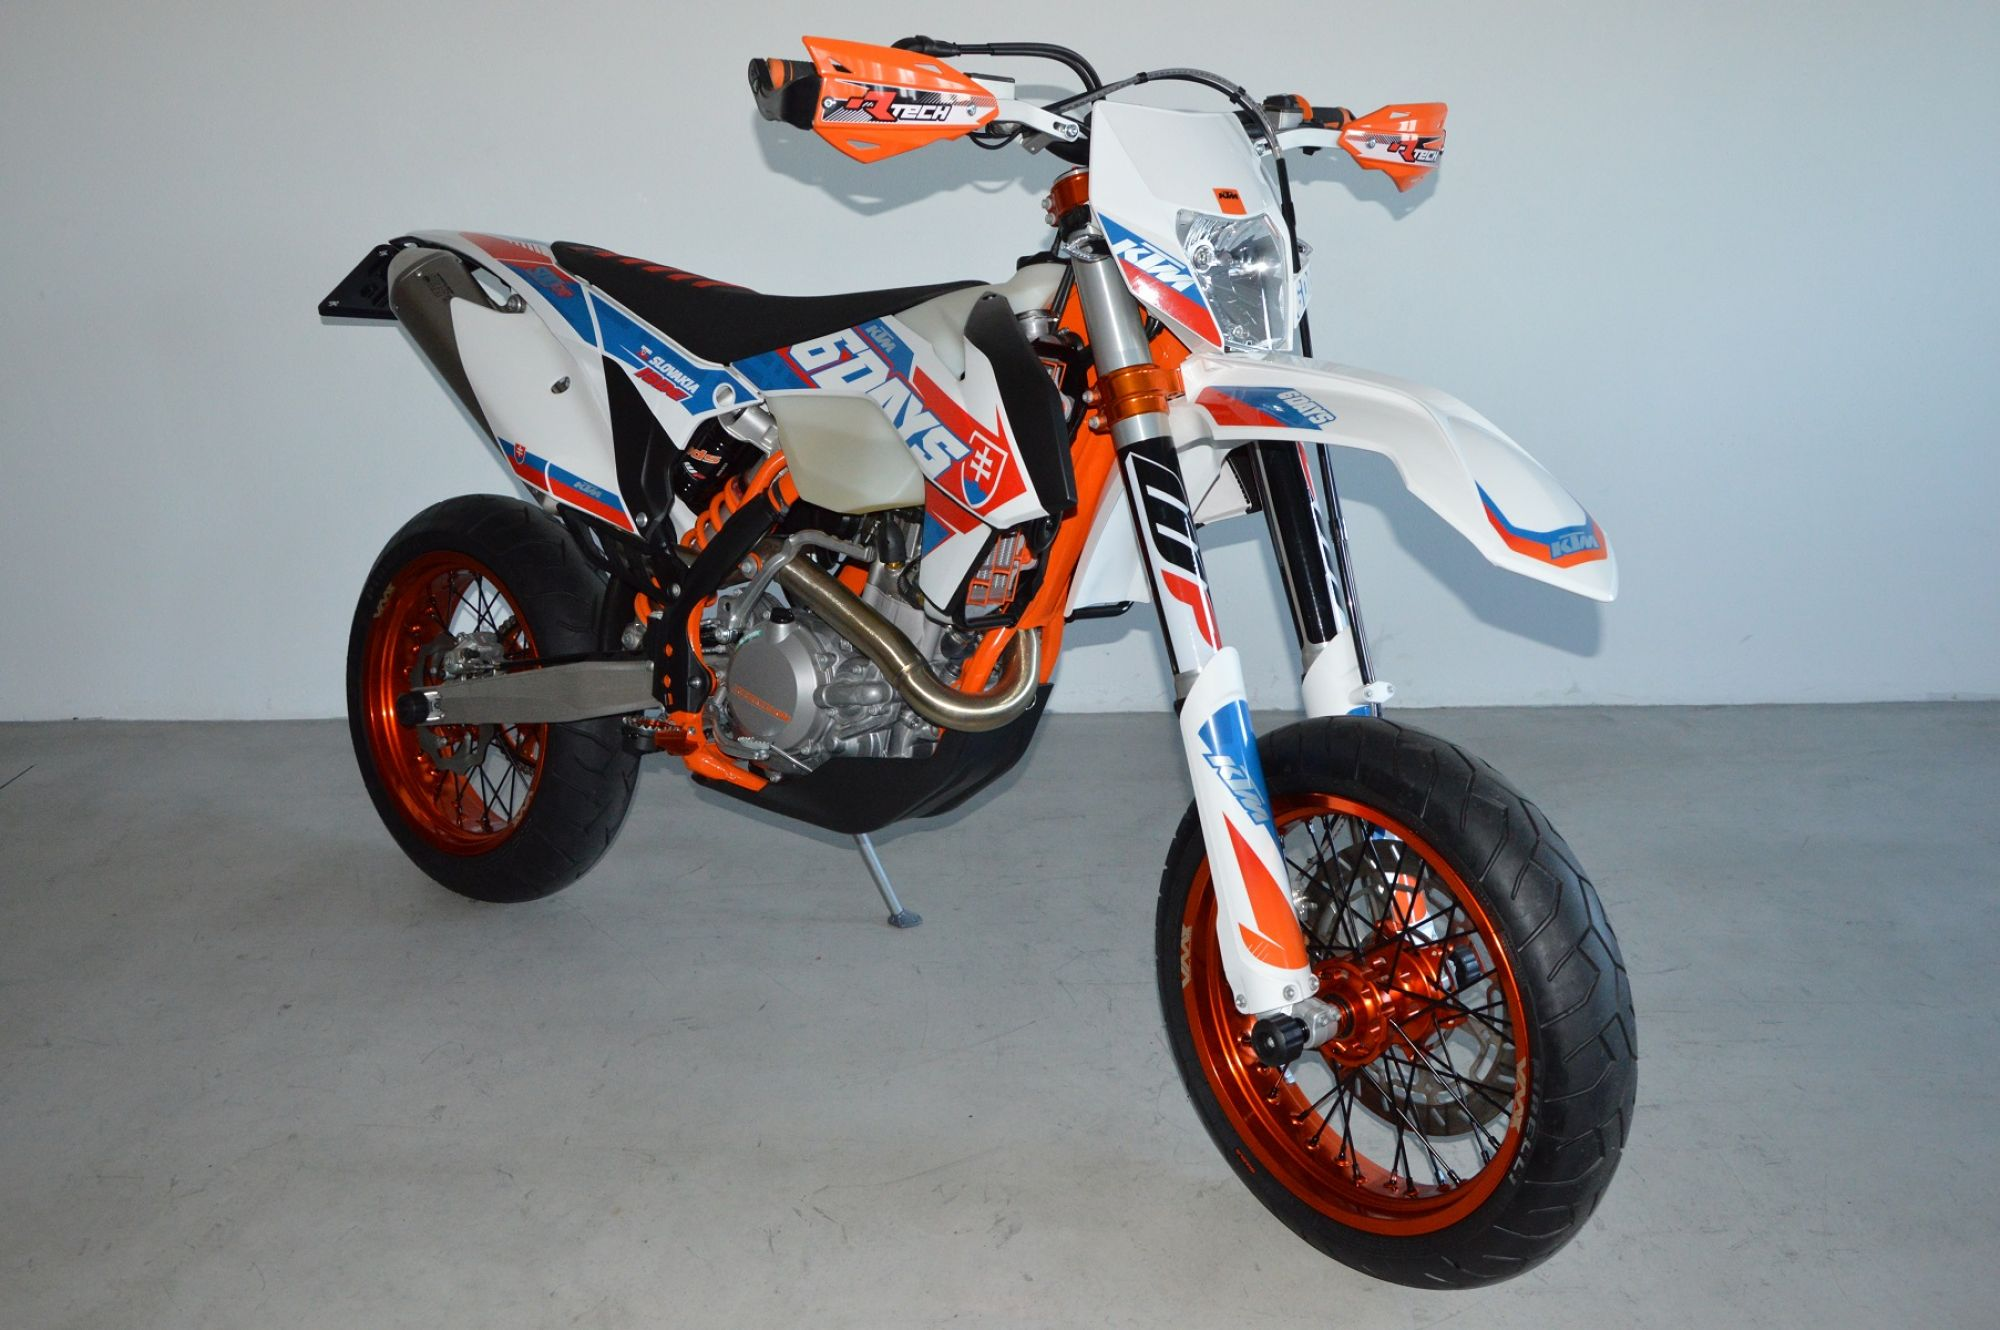 ktm 500 exc sixdays supermoto by motosport niedermayr. Black Bedroom Furniture Sets. Home Design Ideas